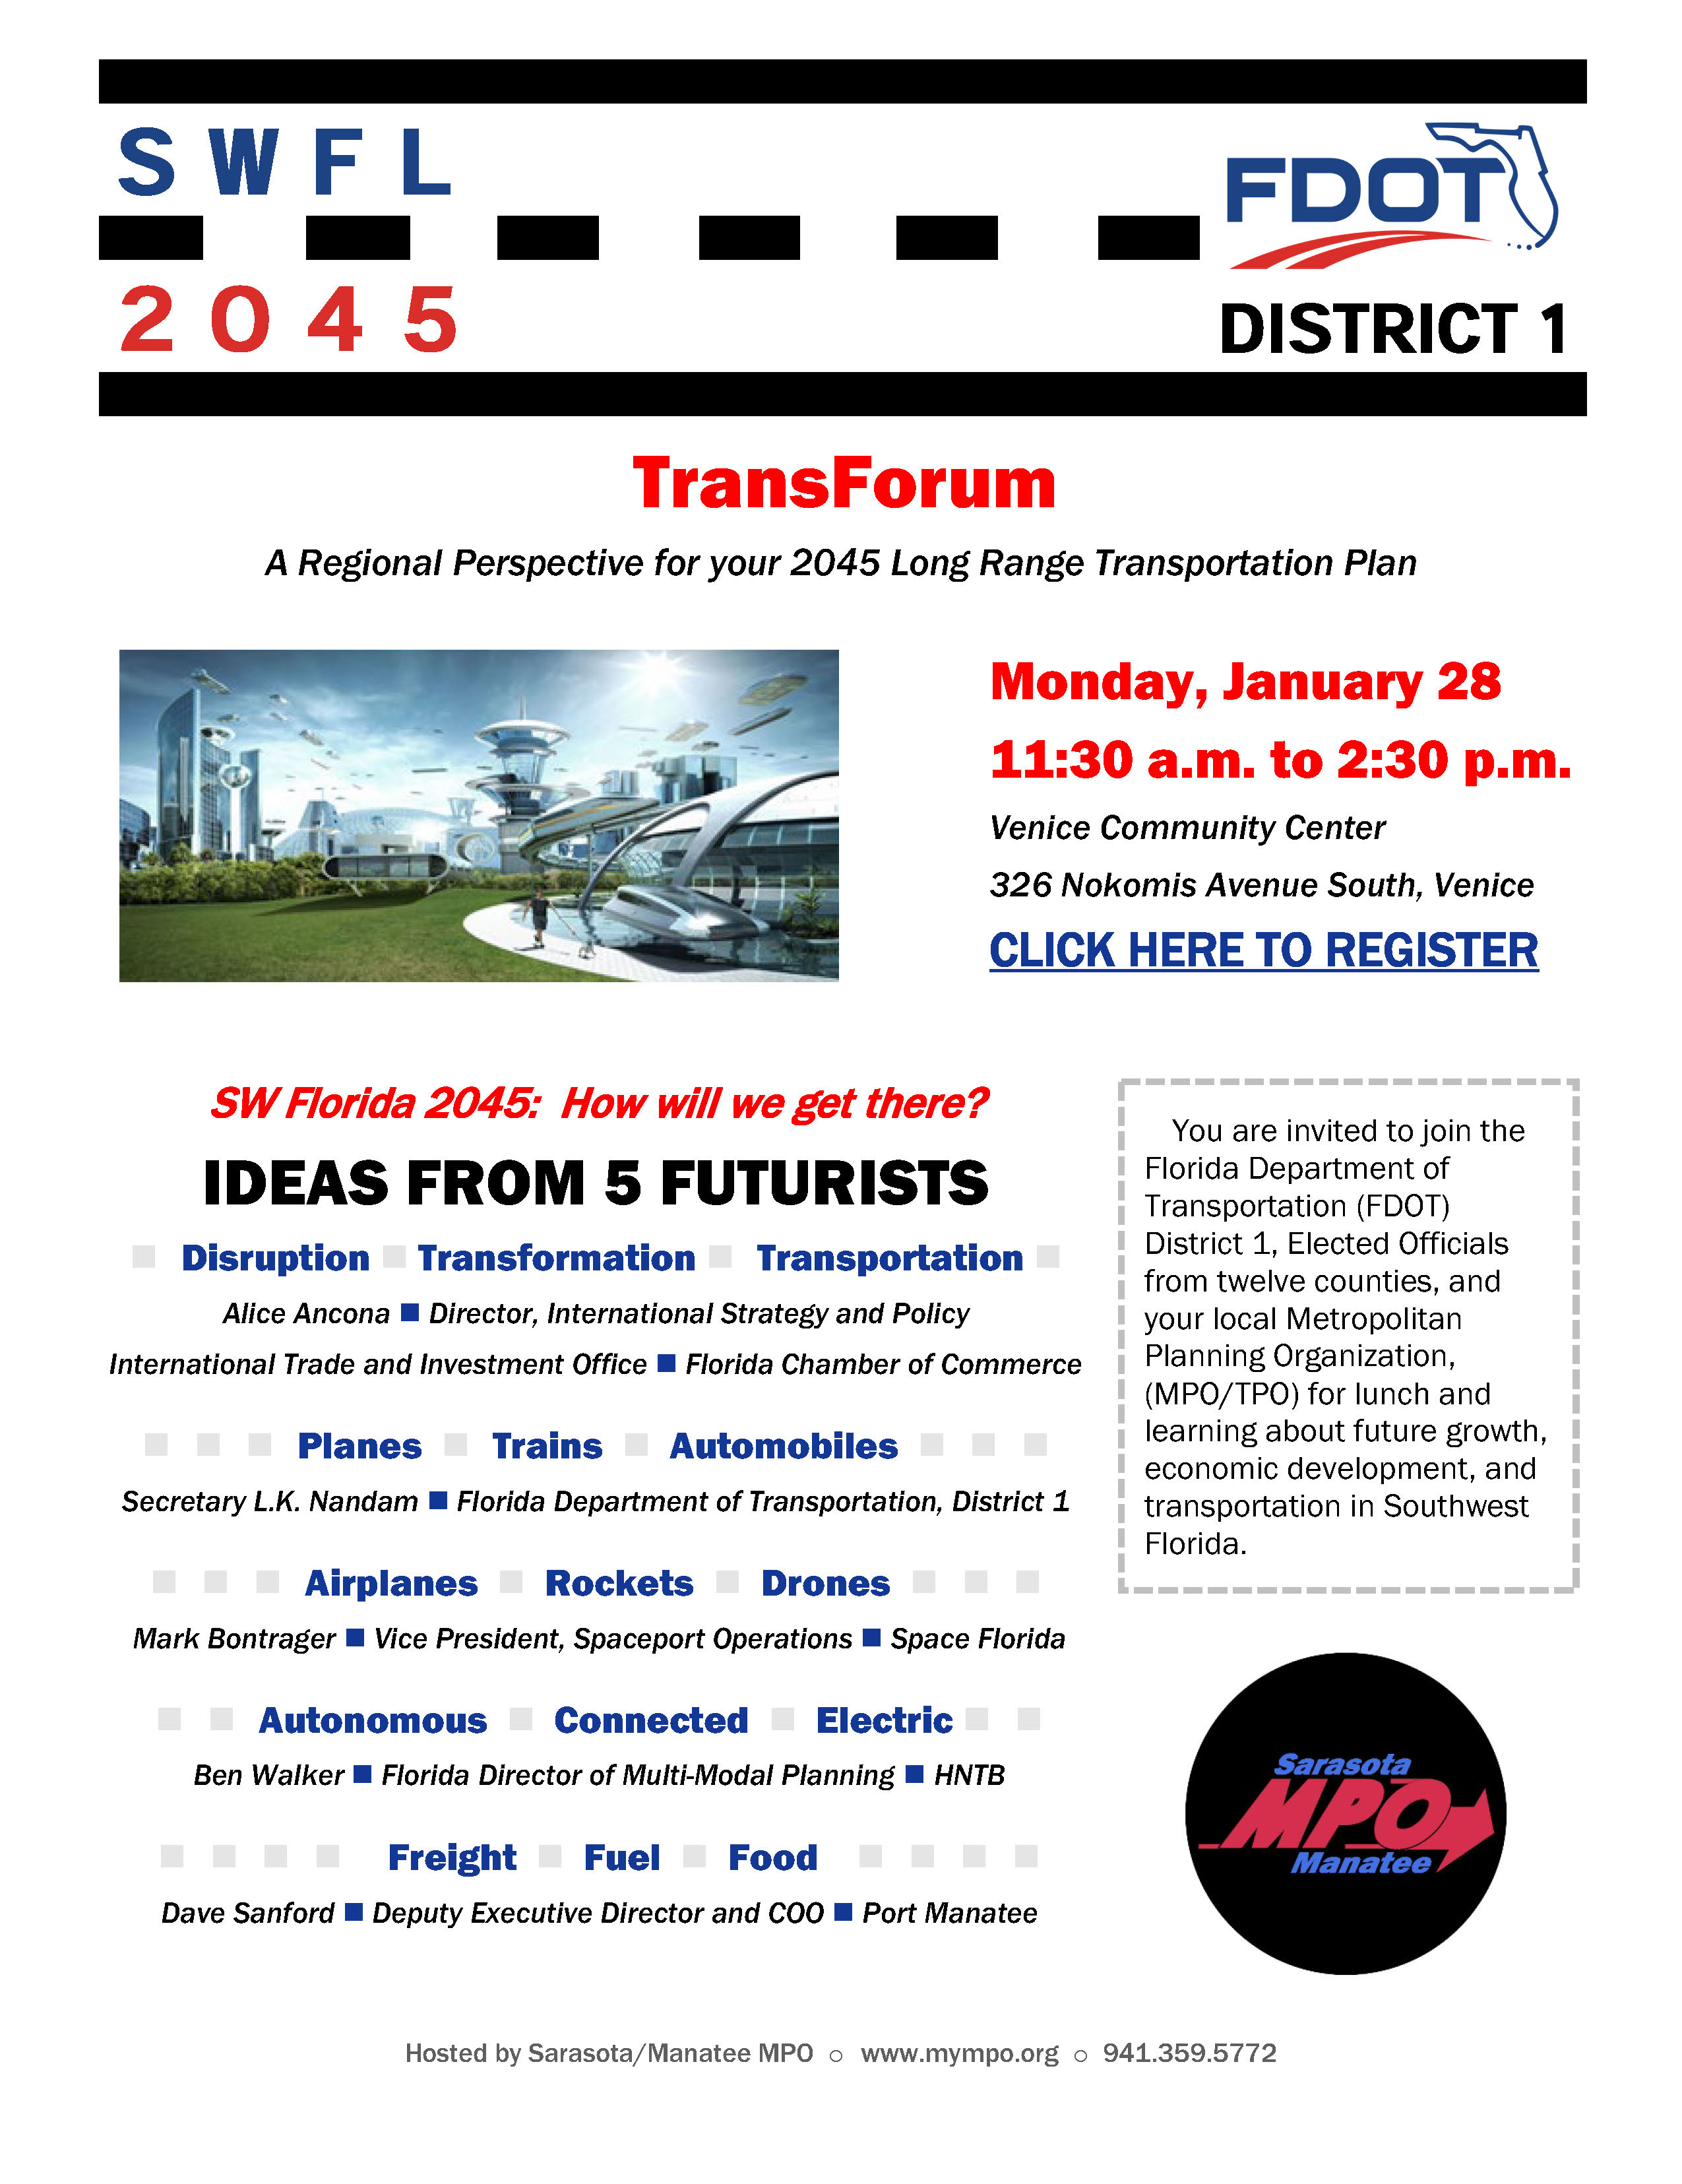 Southwest Florida 2045 District 1 TransForum